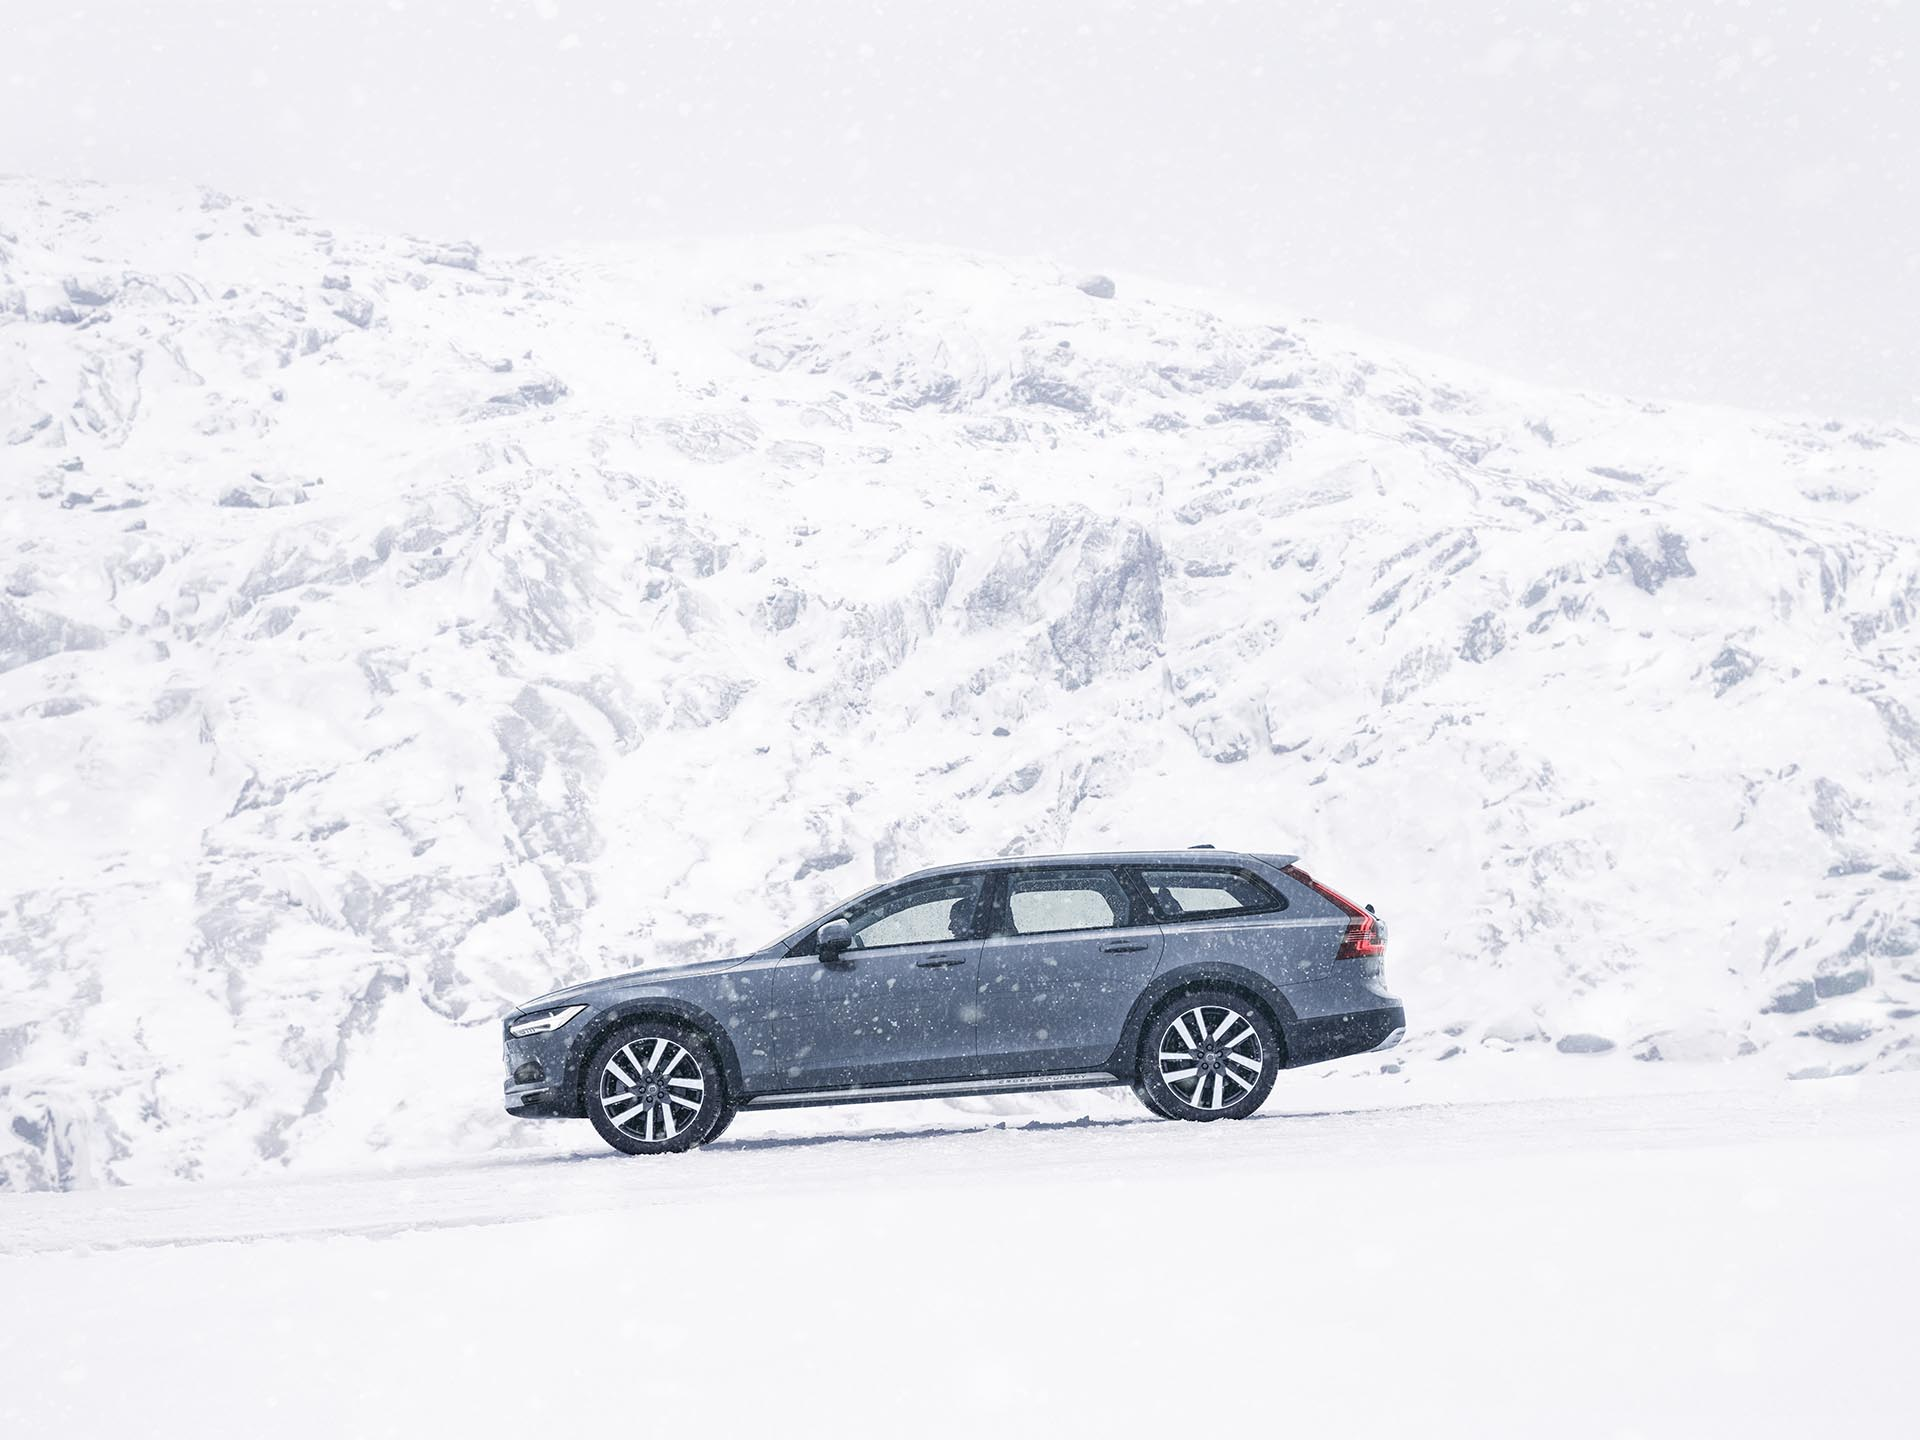 Una Volvo V90 Cross Country Mussel Blue in marcia tra le montagne innevate